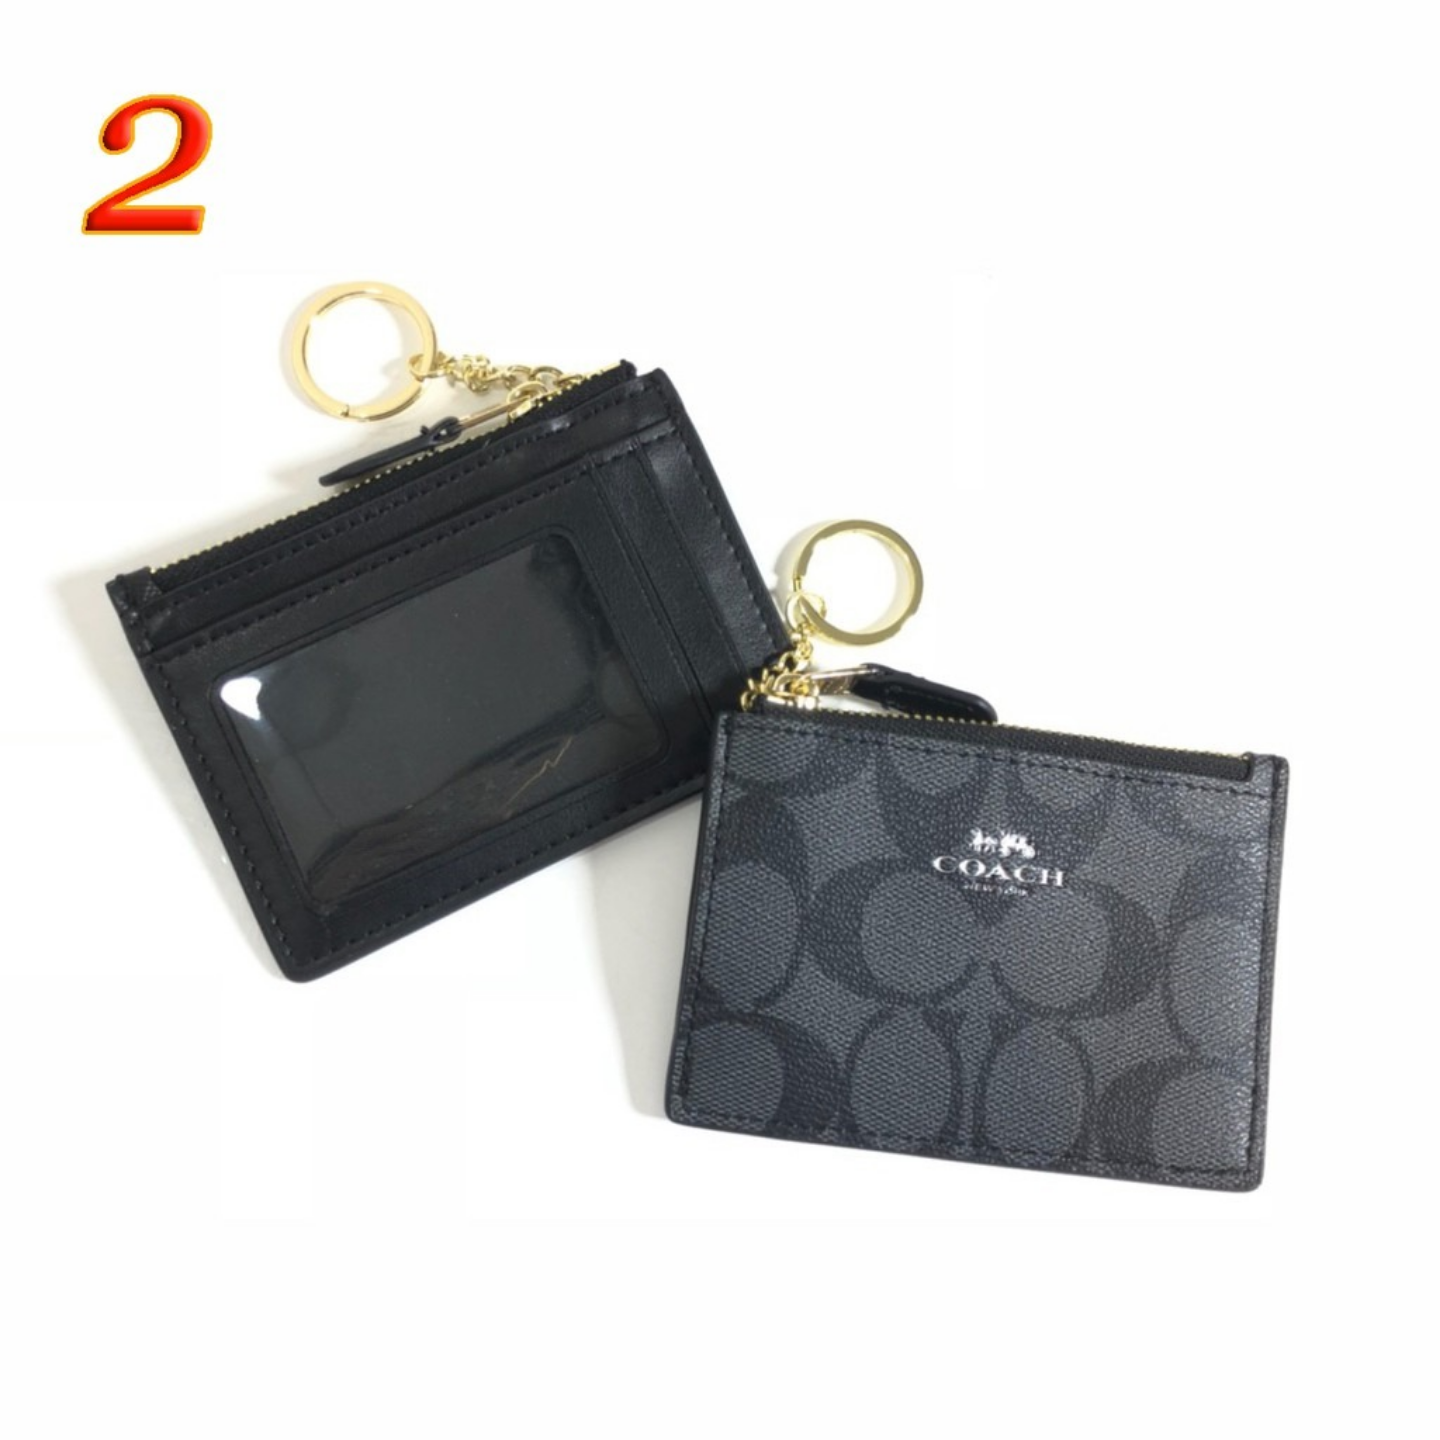 httpsshopee.sg6-colors-Coach-brand-card-package-card-package-card-holder-i.139094437.7100209826